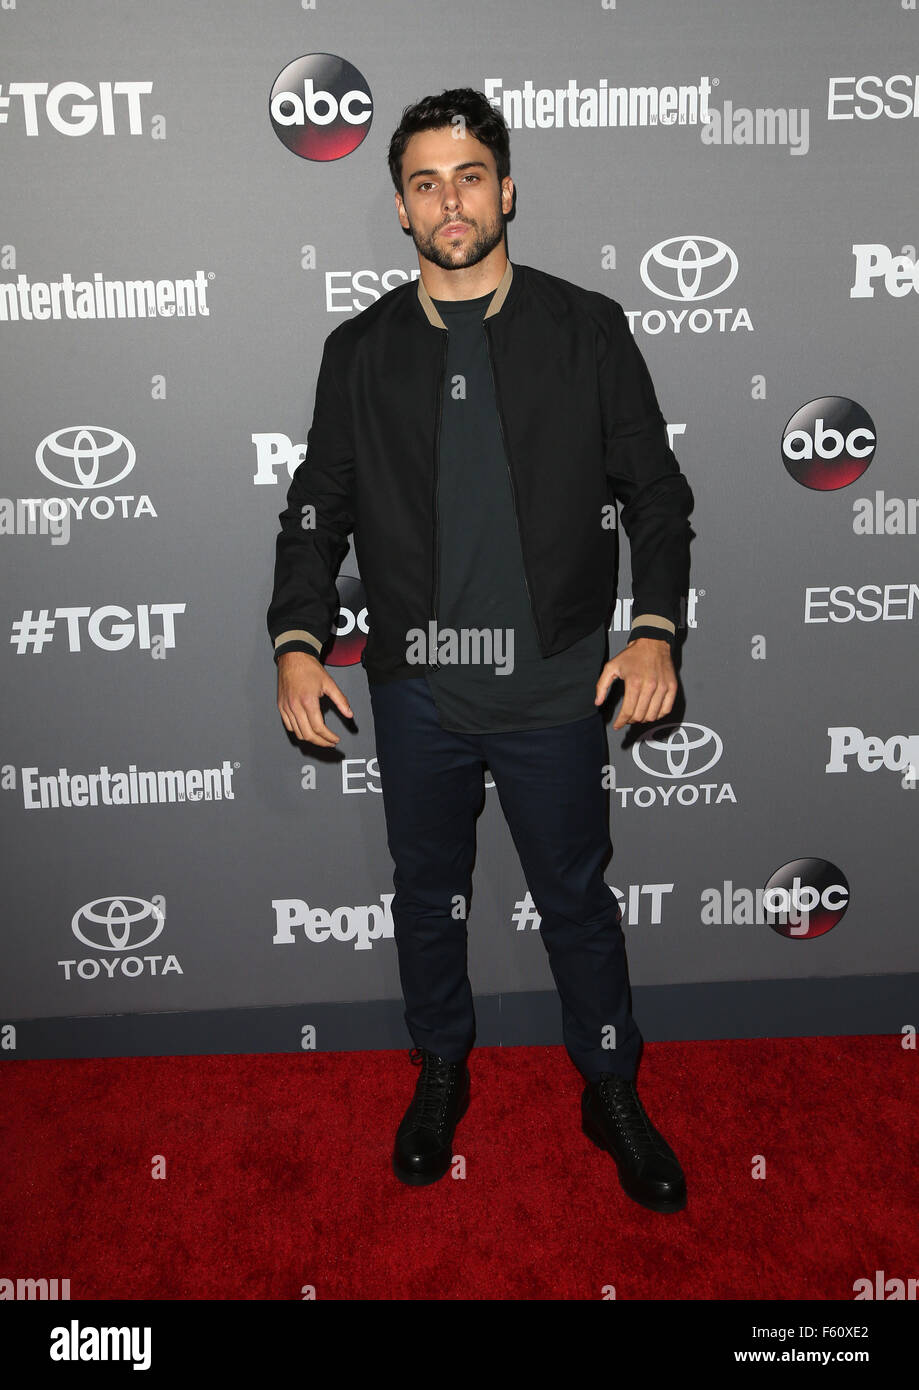 ABC's TGIT premiere event - Arrivals  Featuring: Jack Falahee Where: Los Angeles, California, United States When: Stock Photo